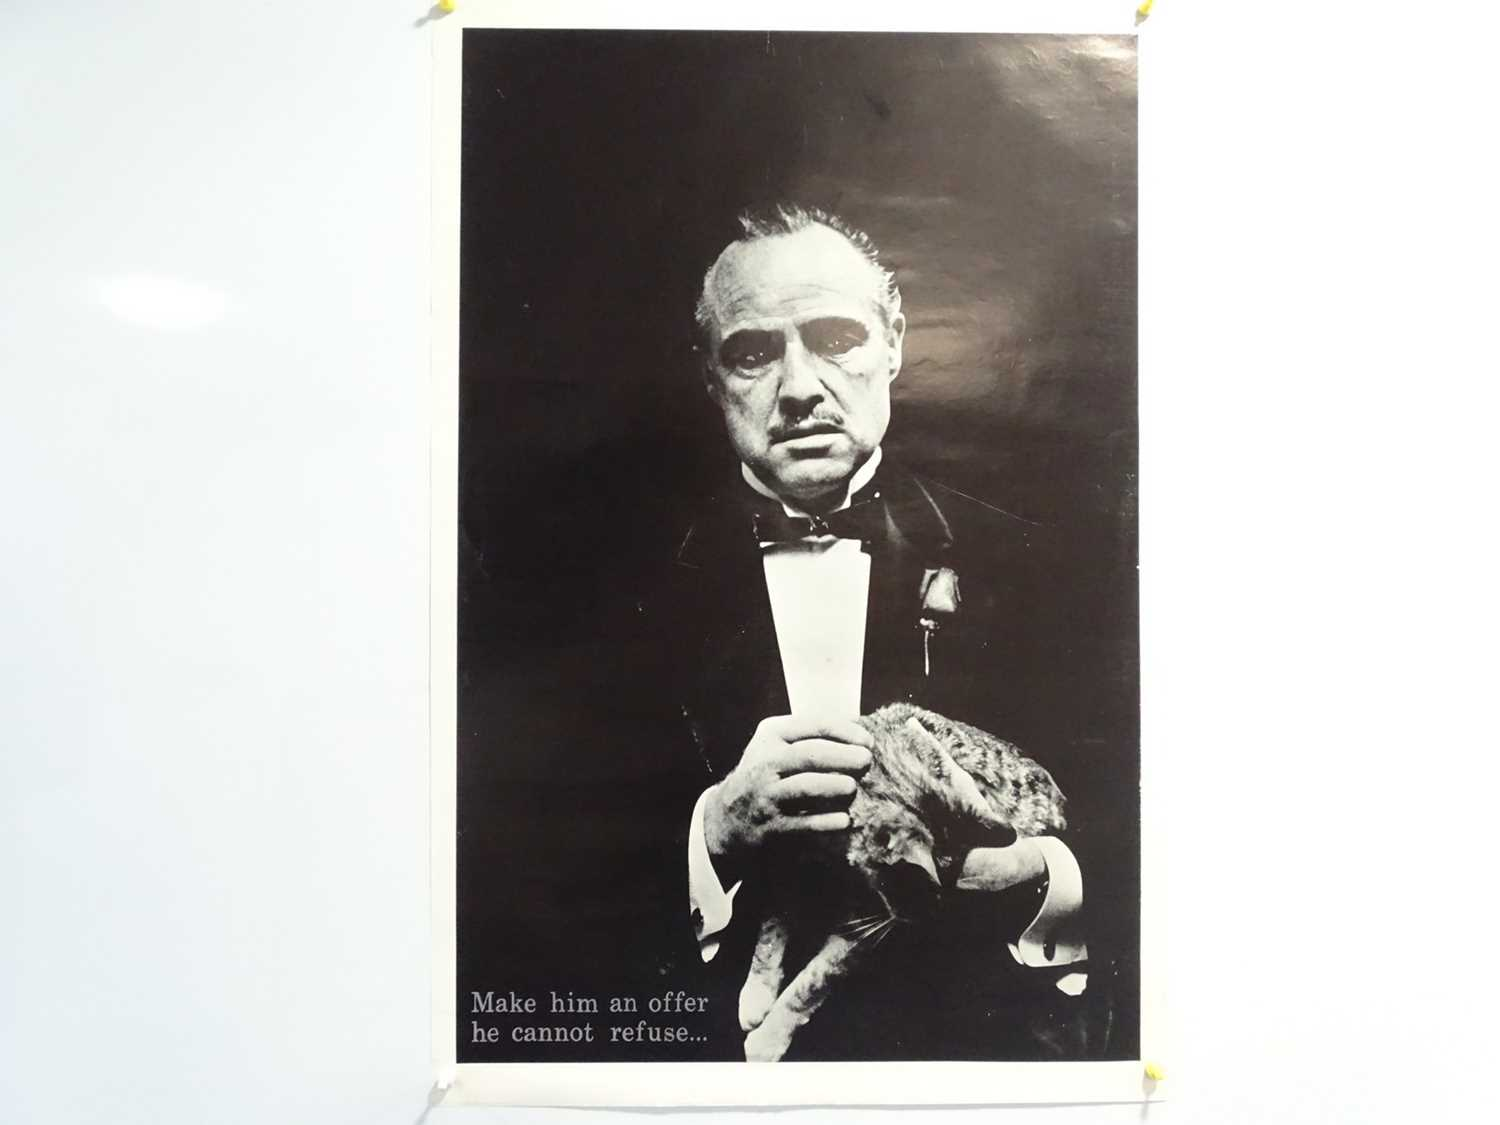 Lot 341 - THE GODFATHER - Black and white portrait,...